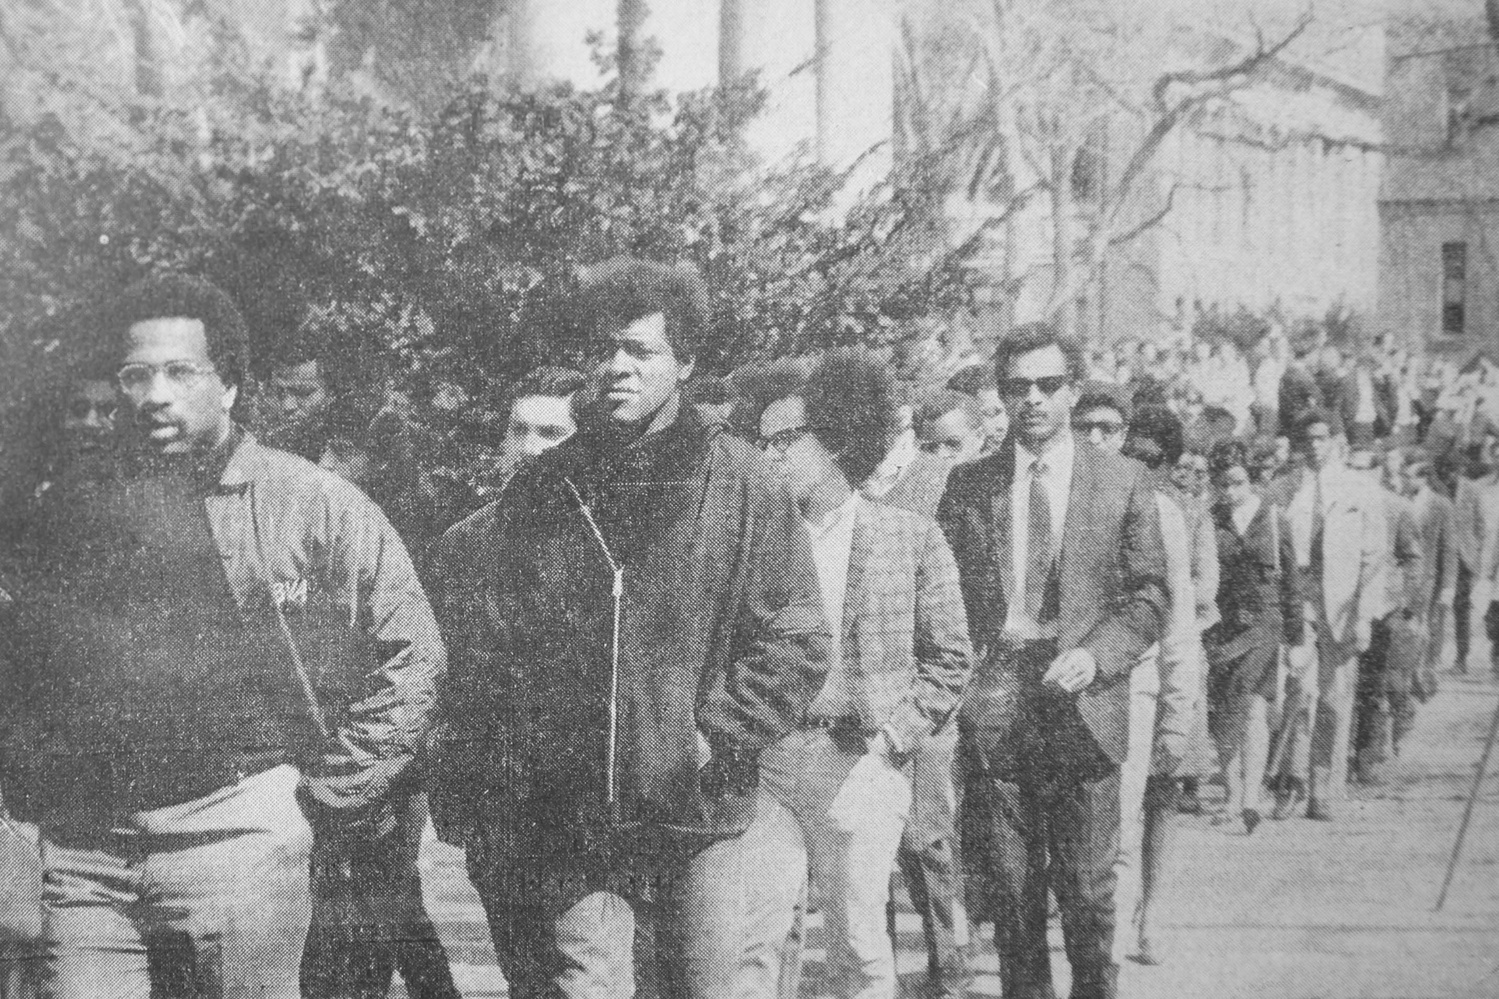 Black students leave a University memorial service for Rev. Martin Luther King Jr. to attend a separate service.